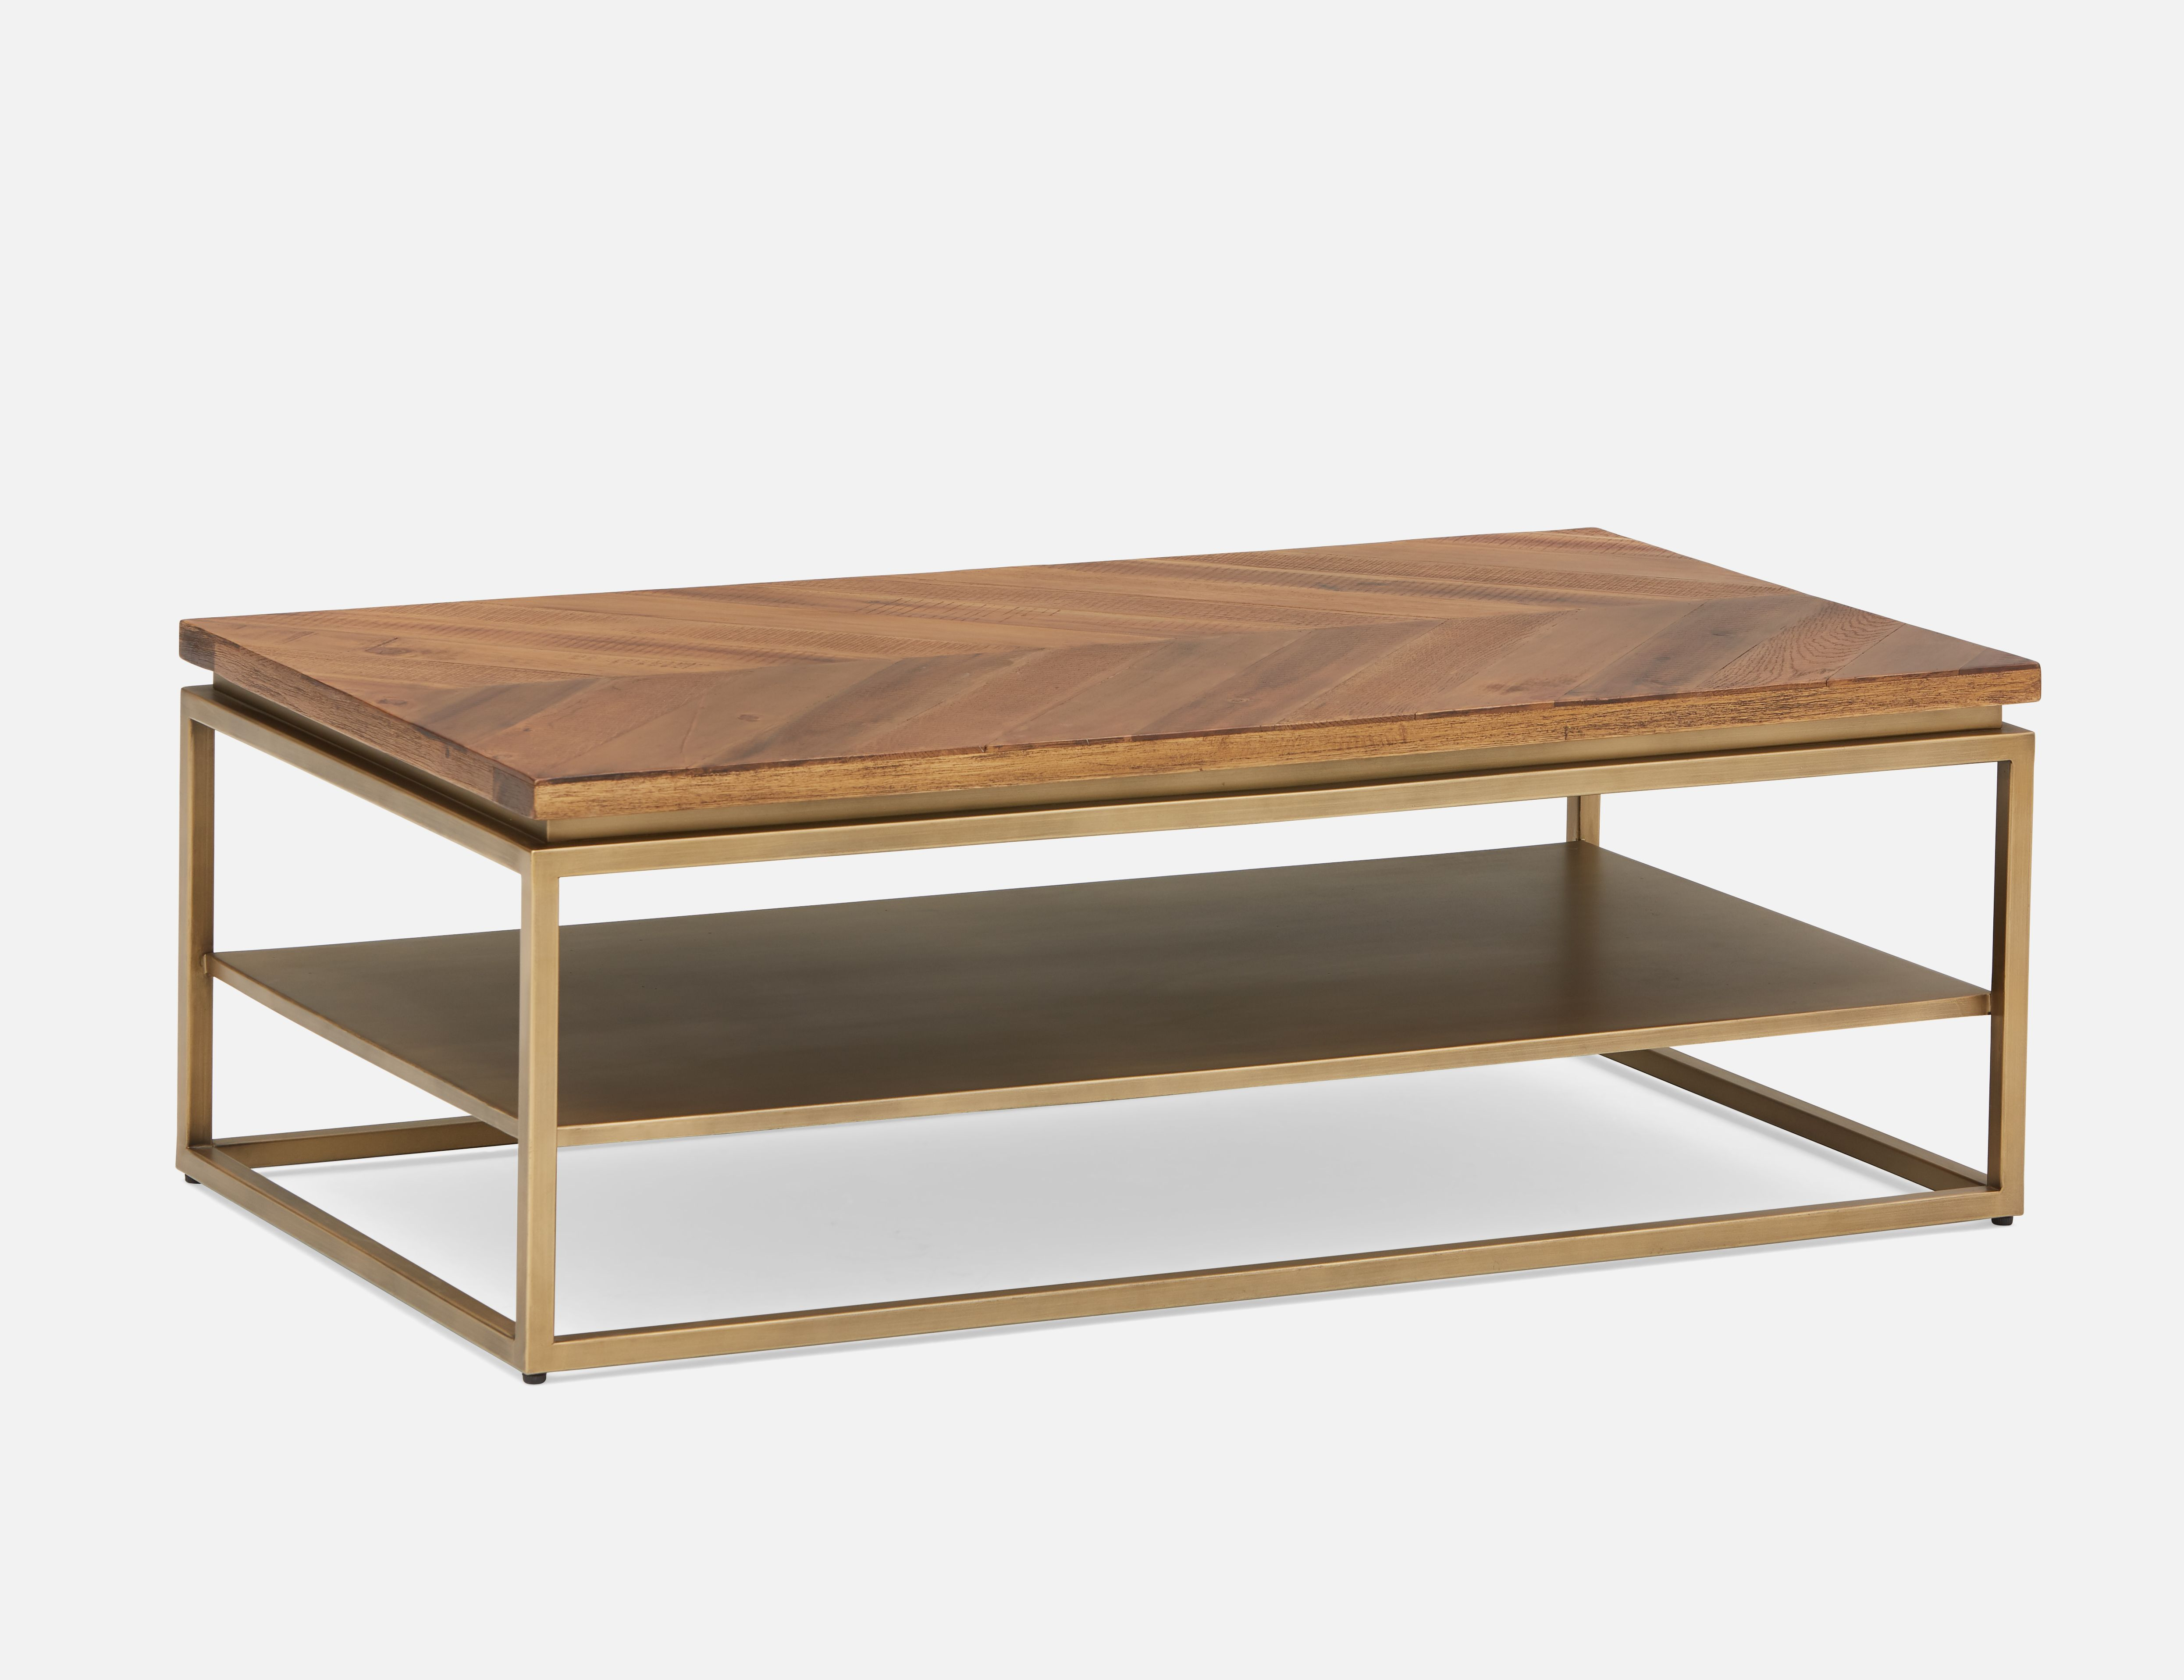 Brown Coffee Table With Wooden Top 41cm 16 Structube Sigrid Coffee Table Wood Brass Coffee Table Living Room Brown Coffee Table